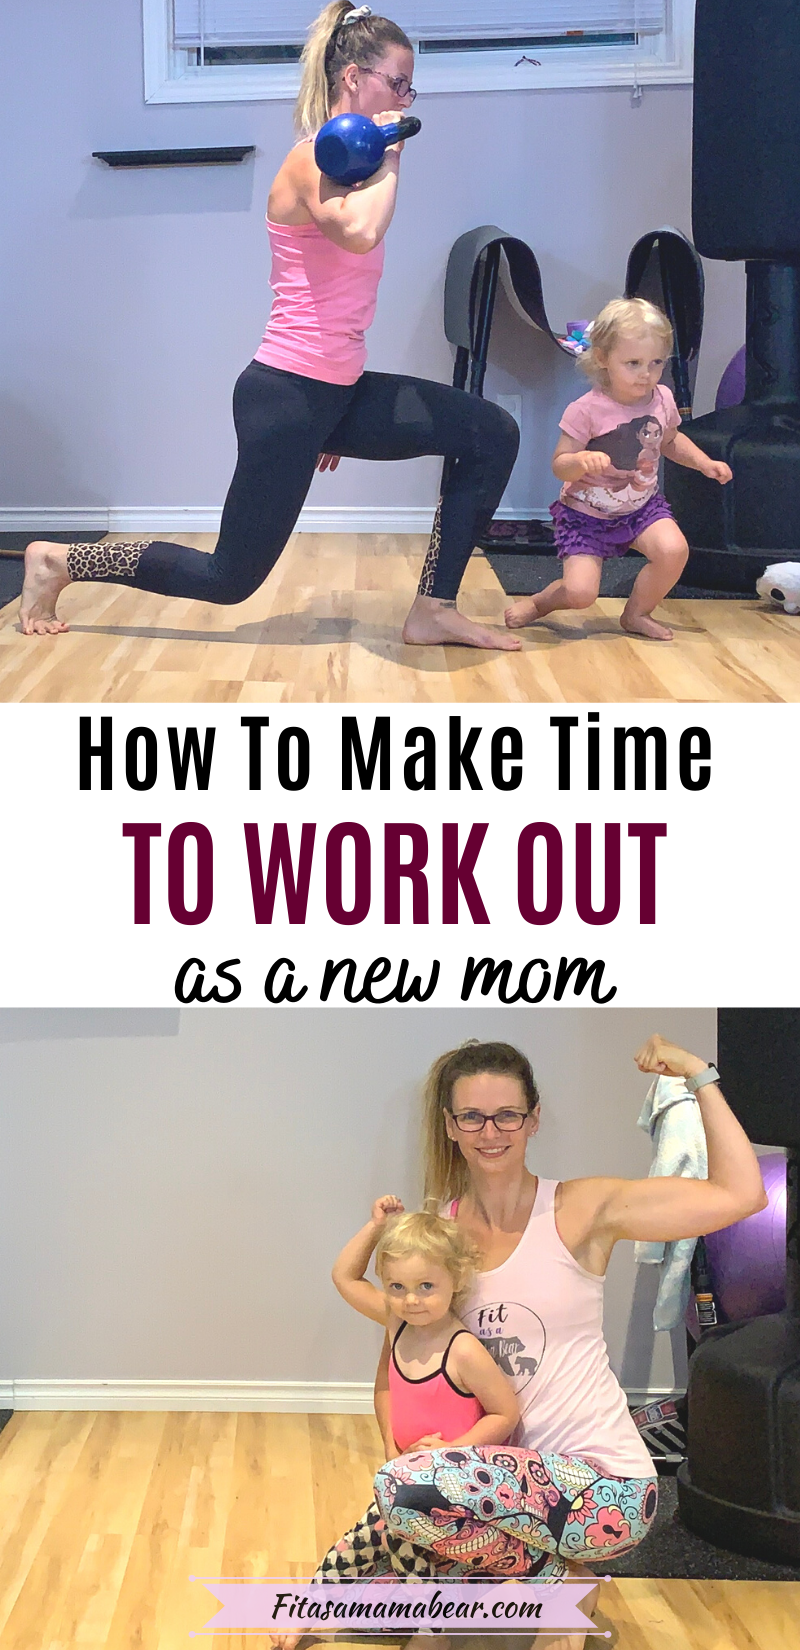 Pinterest image with text: two images of a mom working out with a toddler in the gym with text in the middle about fitness tips for new moms